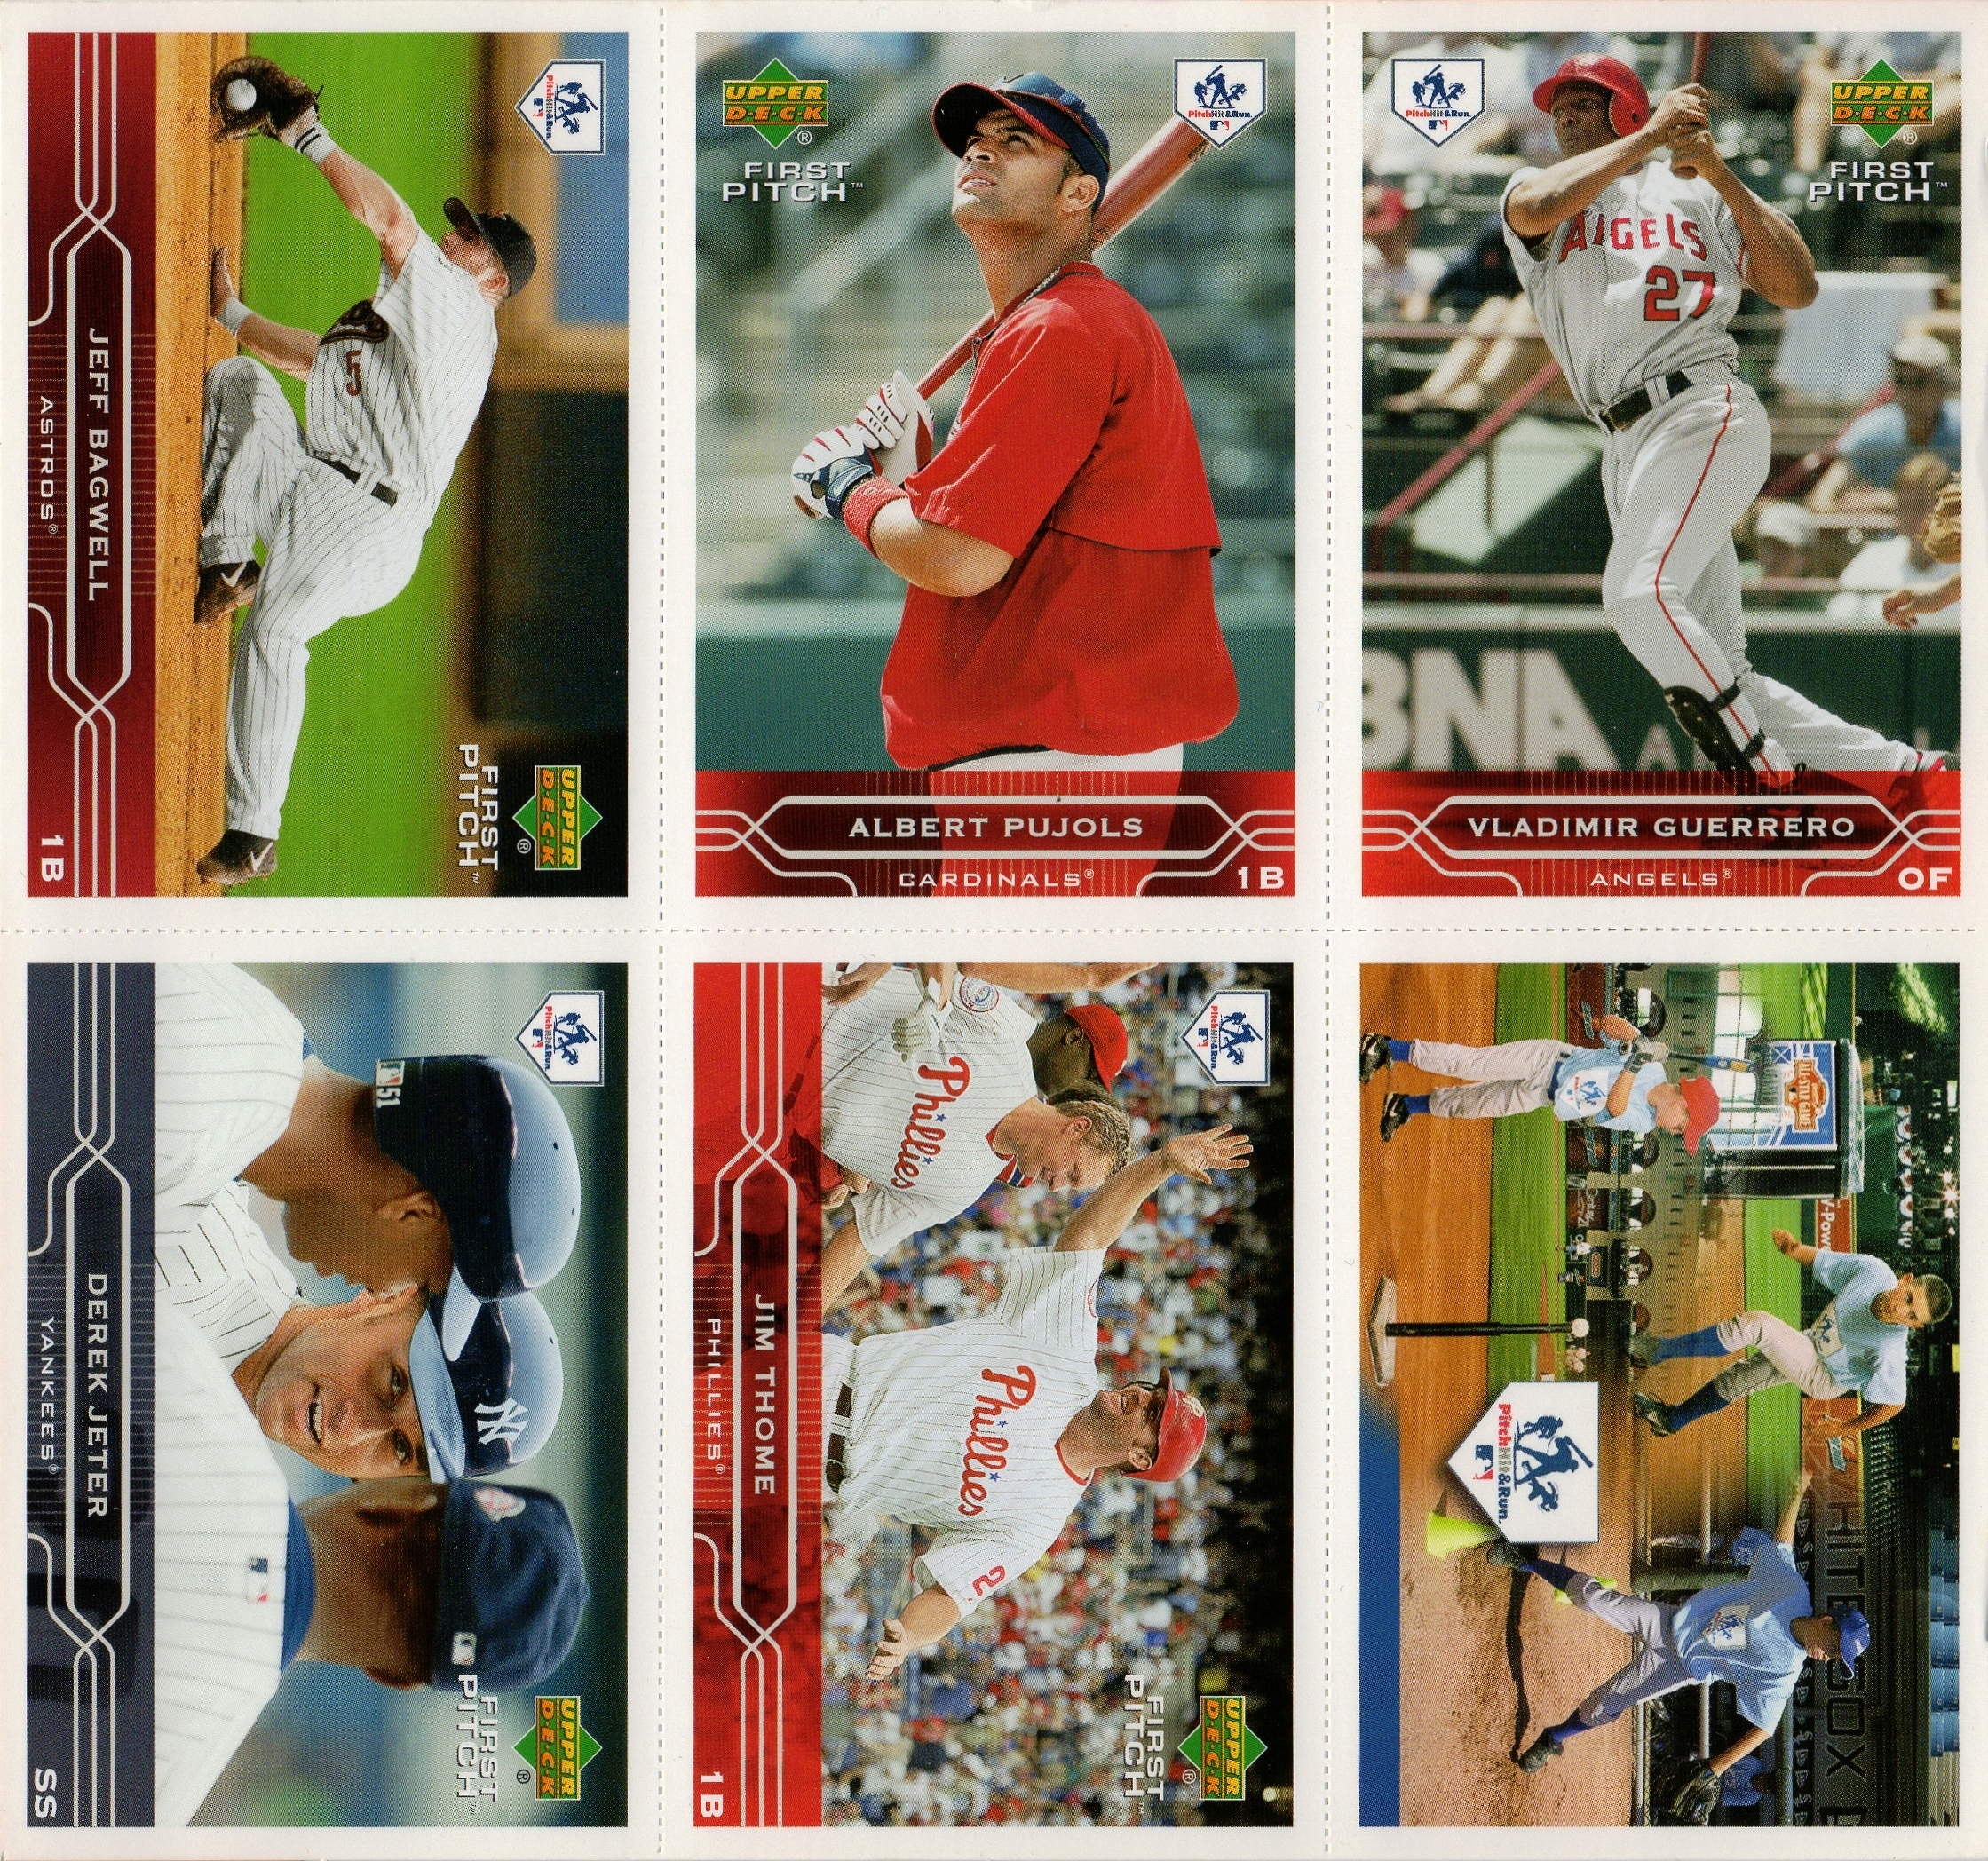 2005 Upper Deck Pitch, Hit & Run Panel